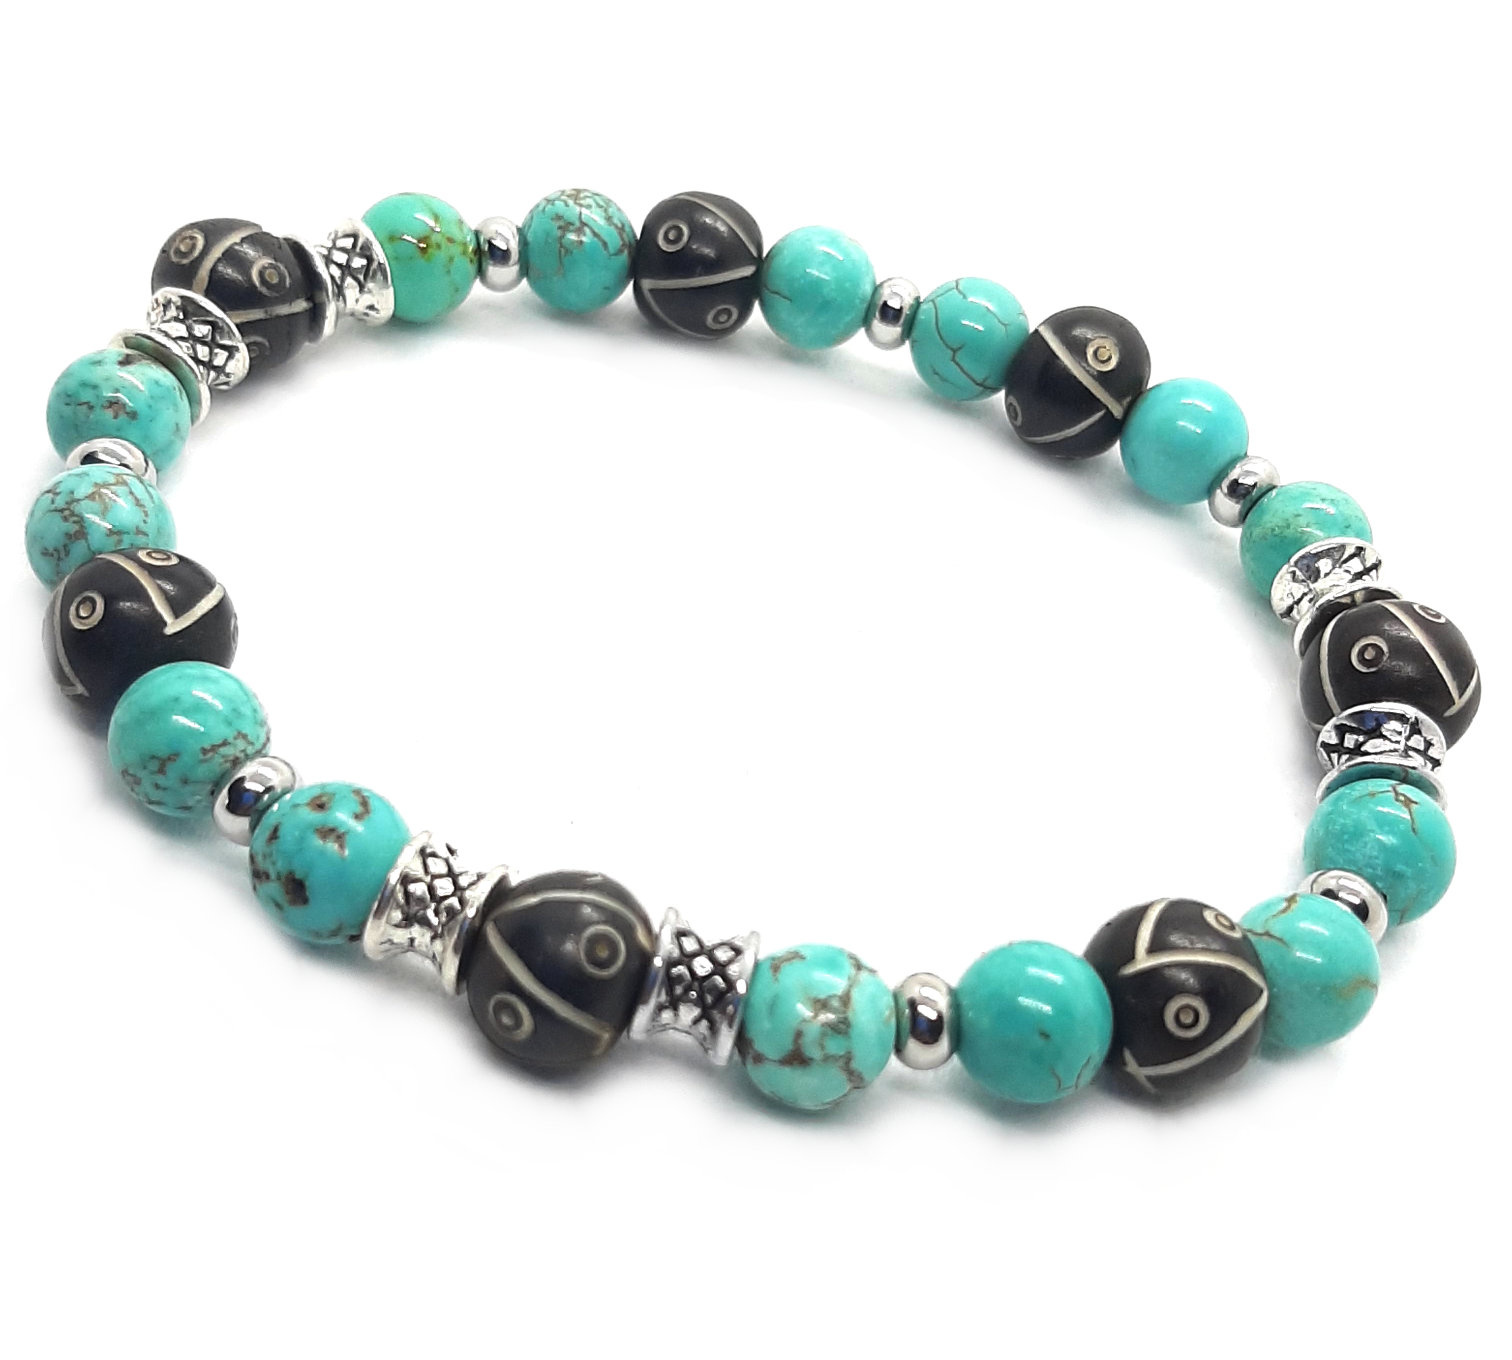 Sazou Jewels Armband Natural Stones Turquoise & Ox Bone by Sazou Jewels